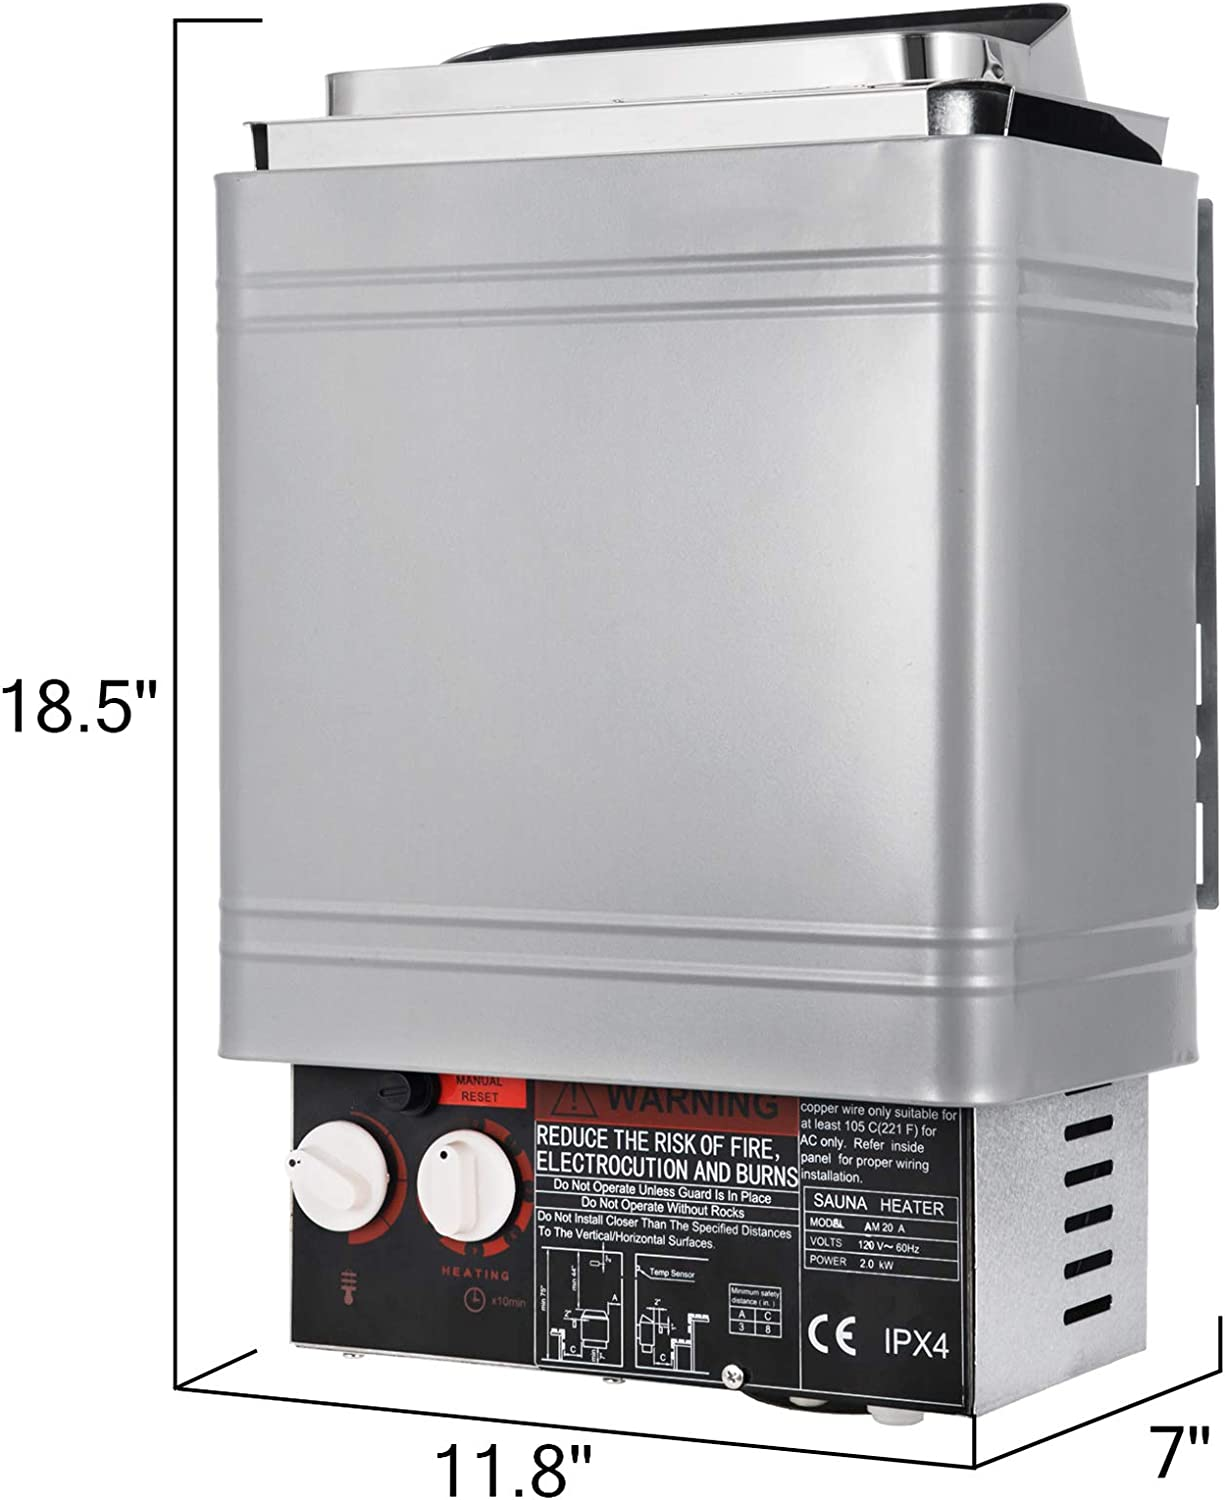 Amazon Com Vevor Sauna Heater 2kw Dry Steam Bath Stove 110v 120v With Internal Controller For Max 105 9 Cubic Feet Home Hotel Spa Shower Home Improvement